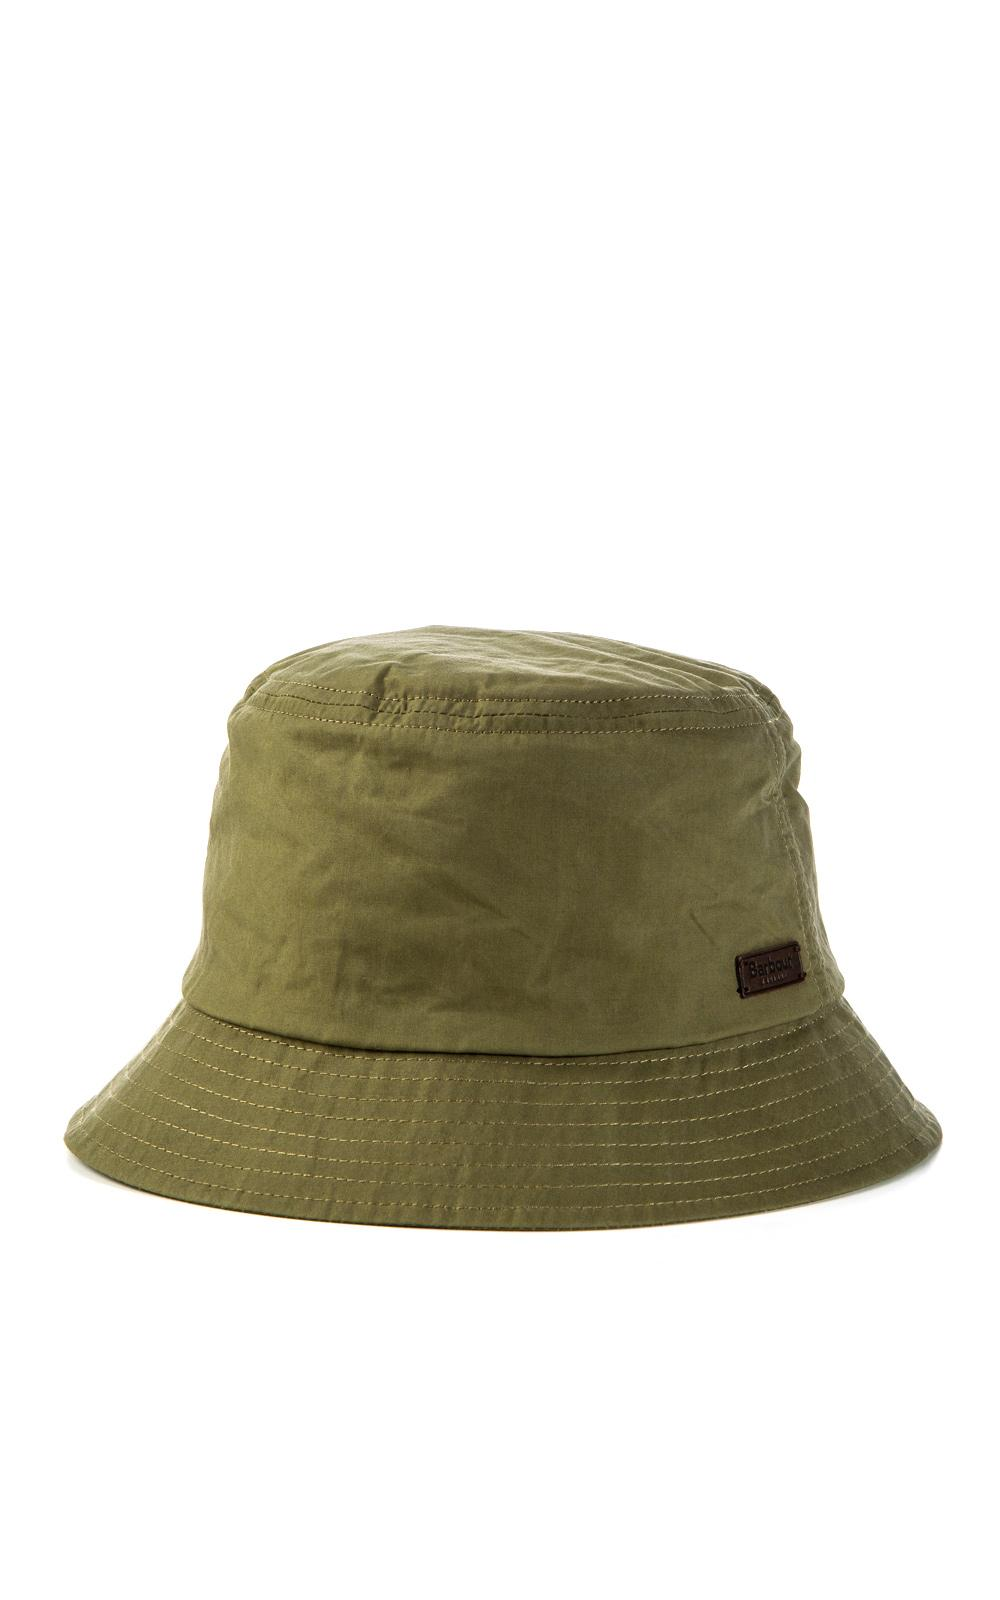 f131fa75f8e Lyst - Barbour Irvine Wax Sports Hat Light Green in Green for Men